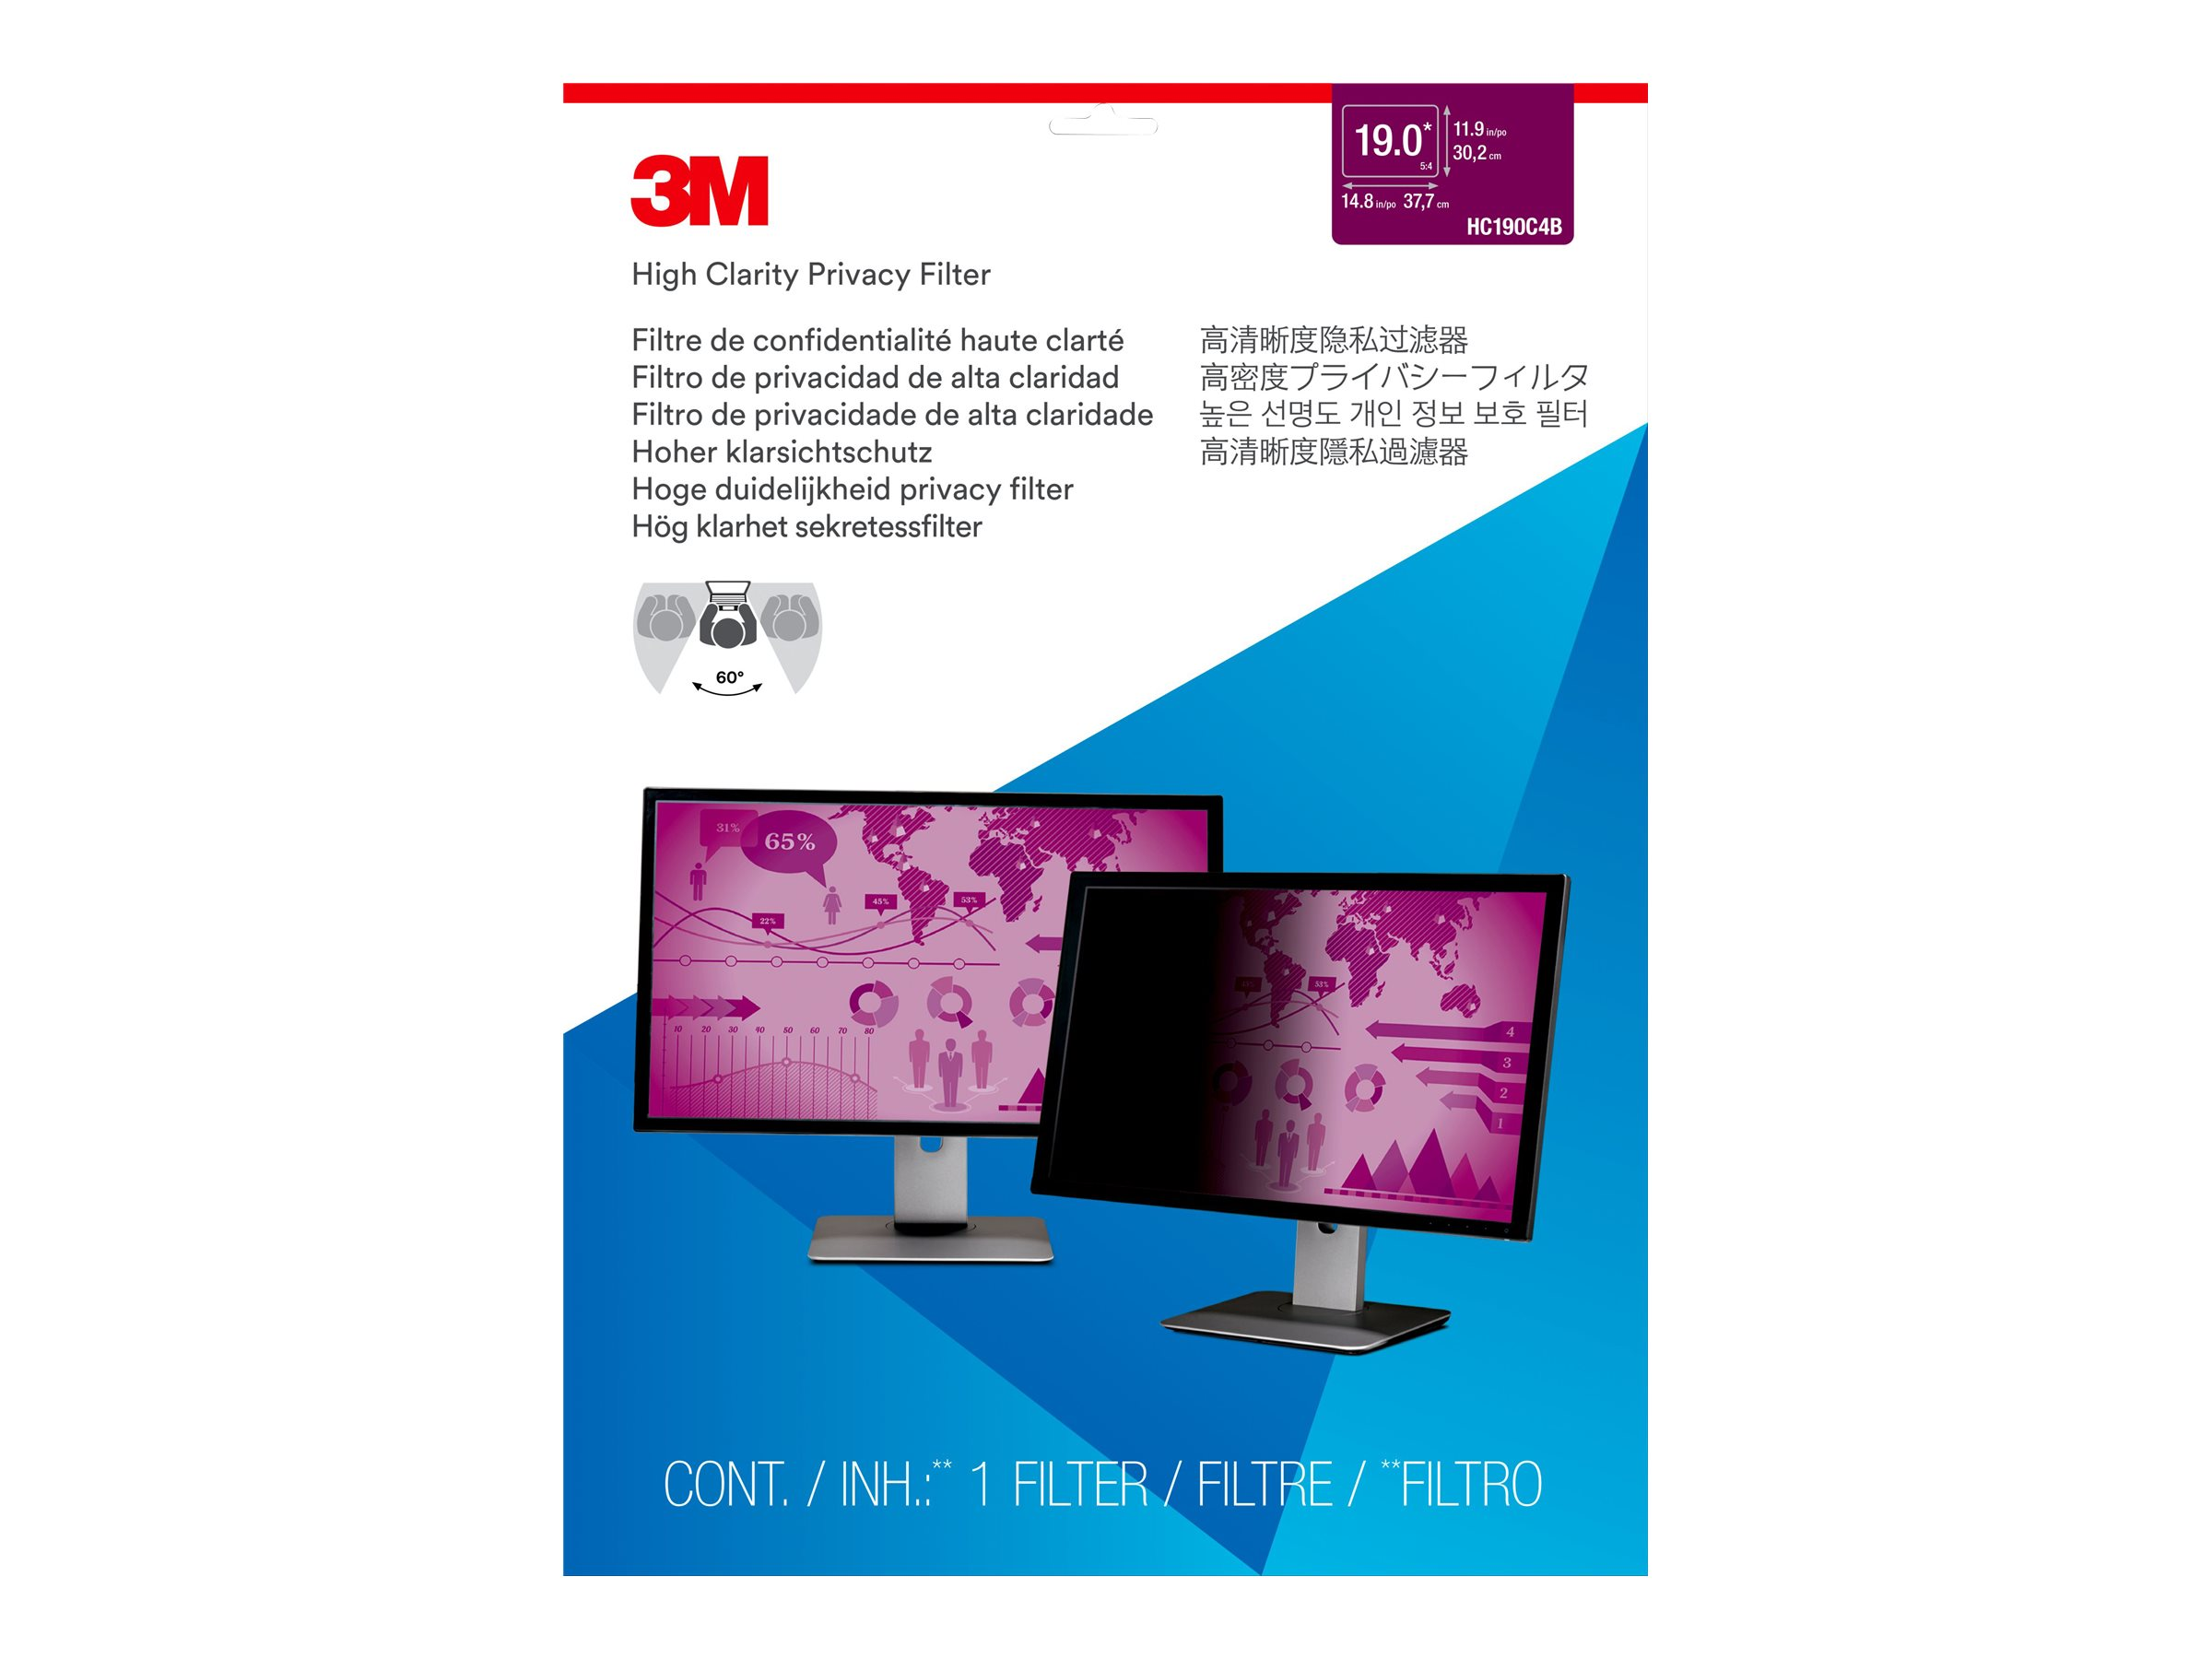 3M High Clarity Privacy Filter for 19